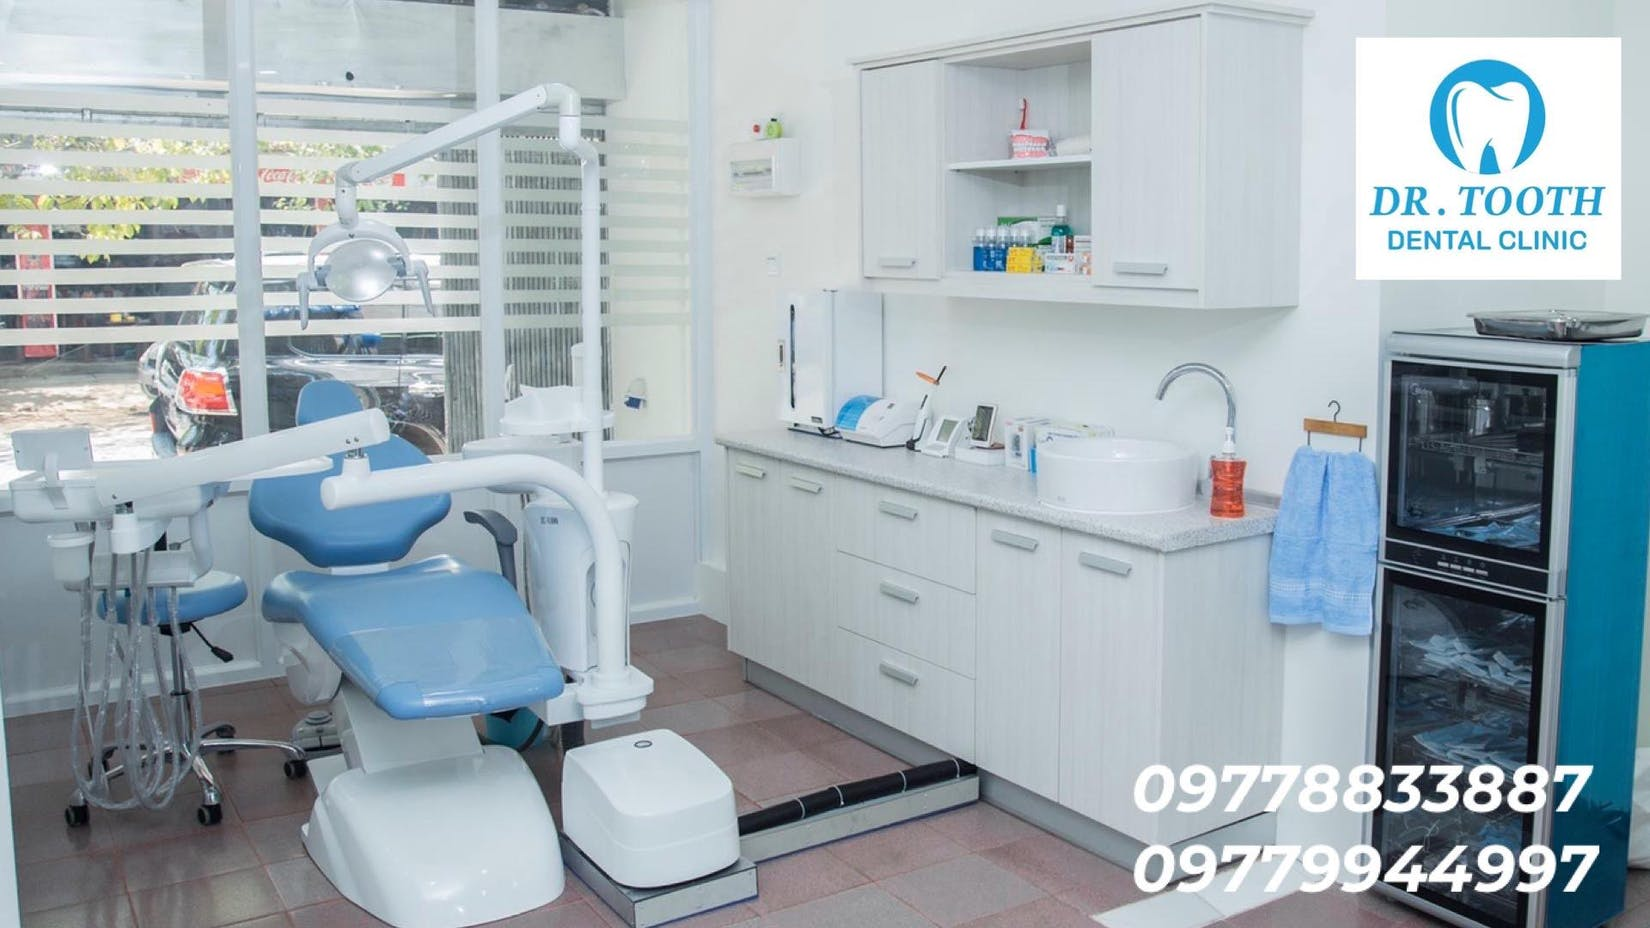 Dr. Tooth Dental Clinic | Medical